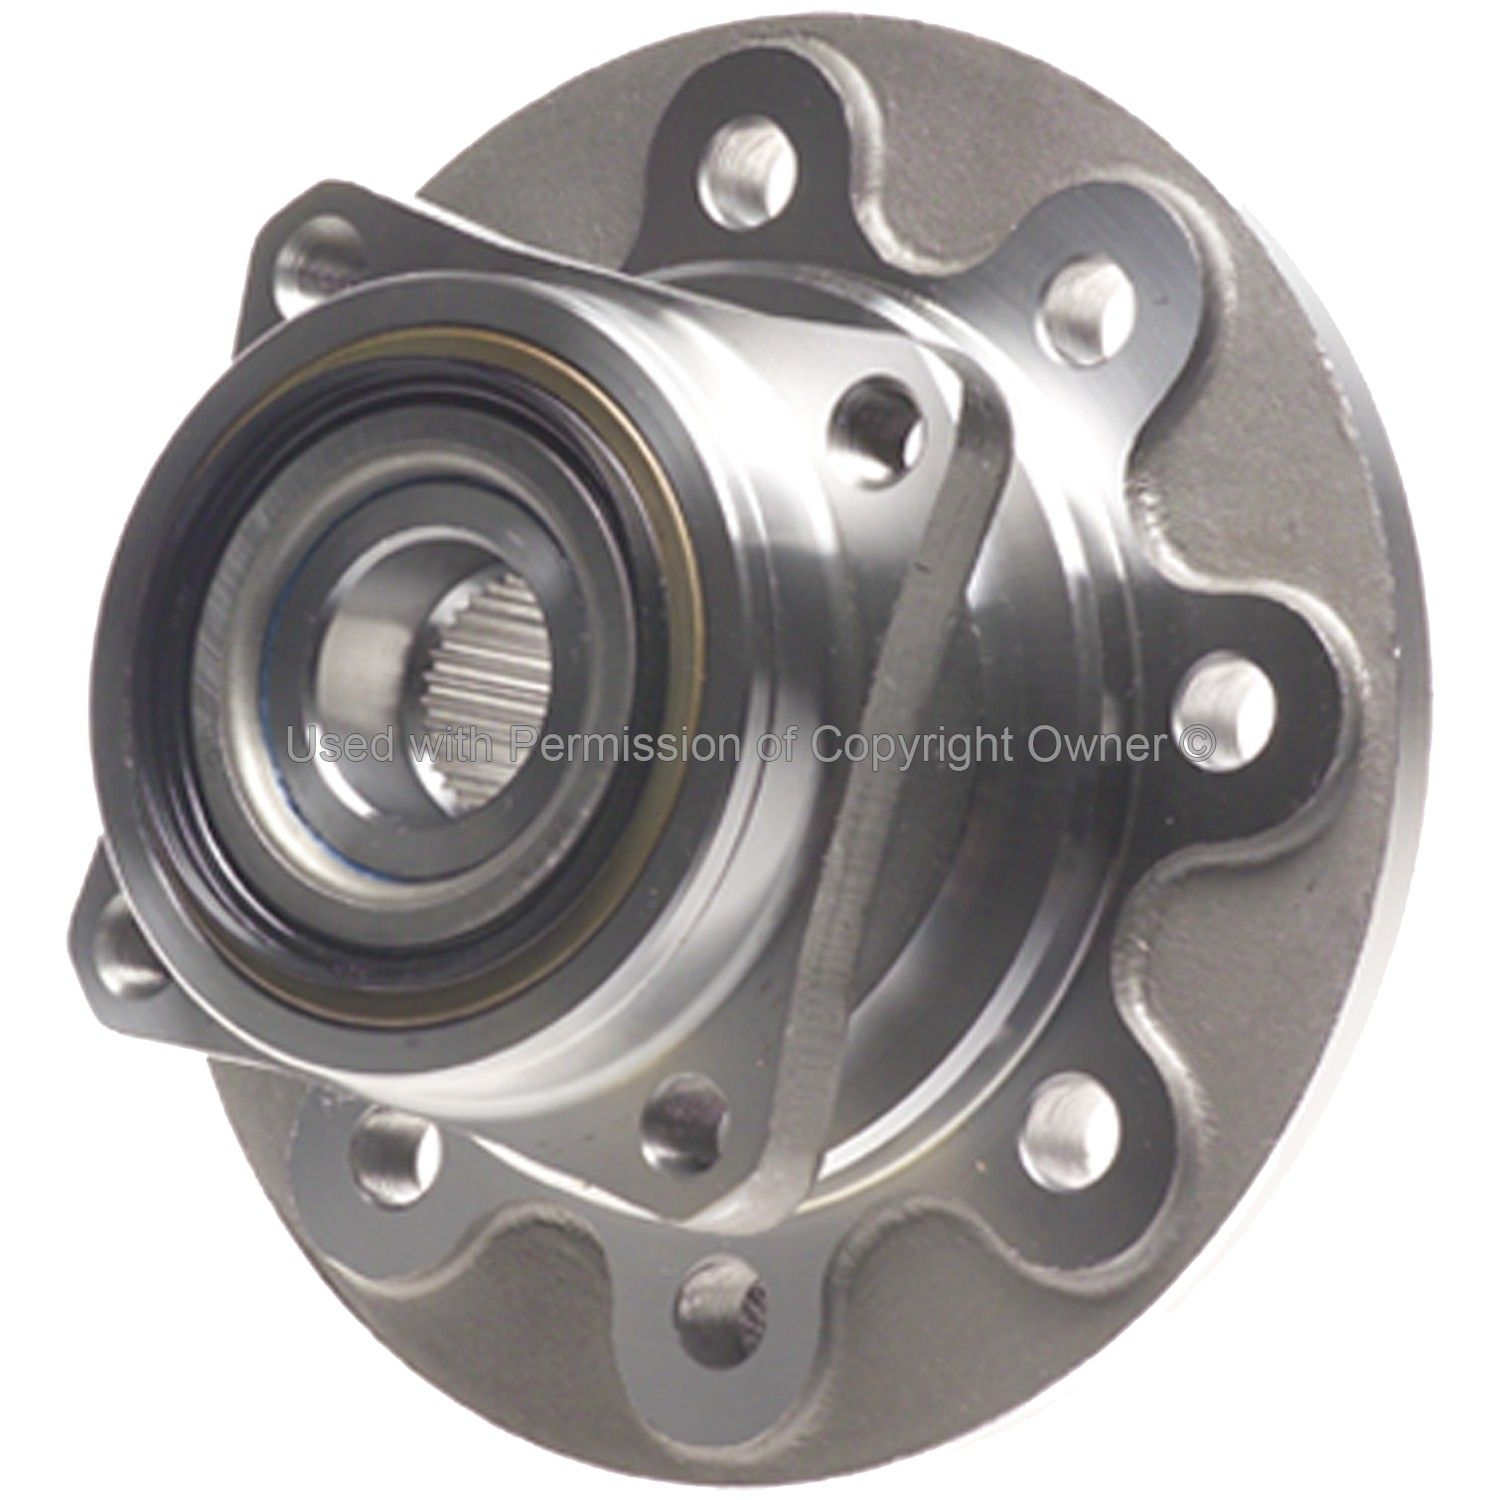 Dodge Ram 2500 Wheel Bearing and Hub Assembly Replacement